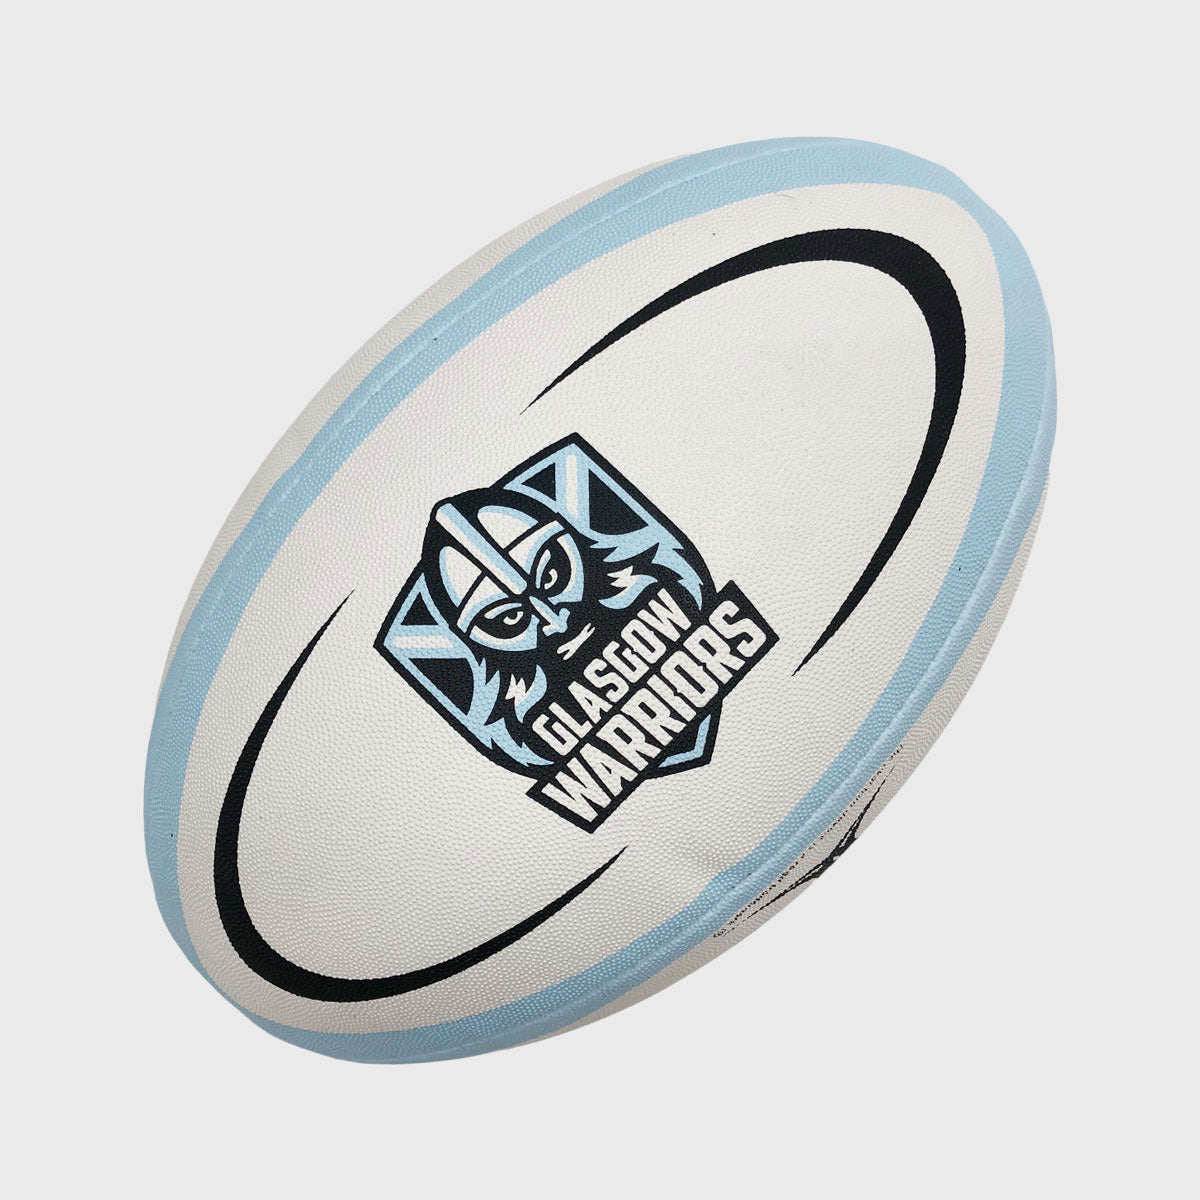 Glasgow Warriors Replica Midi Rugby Ball 2019/20